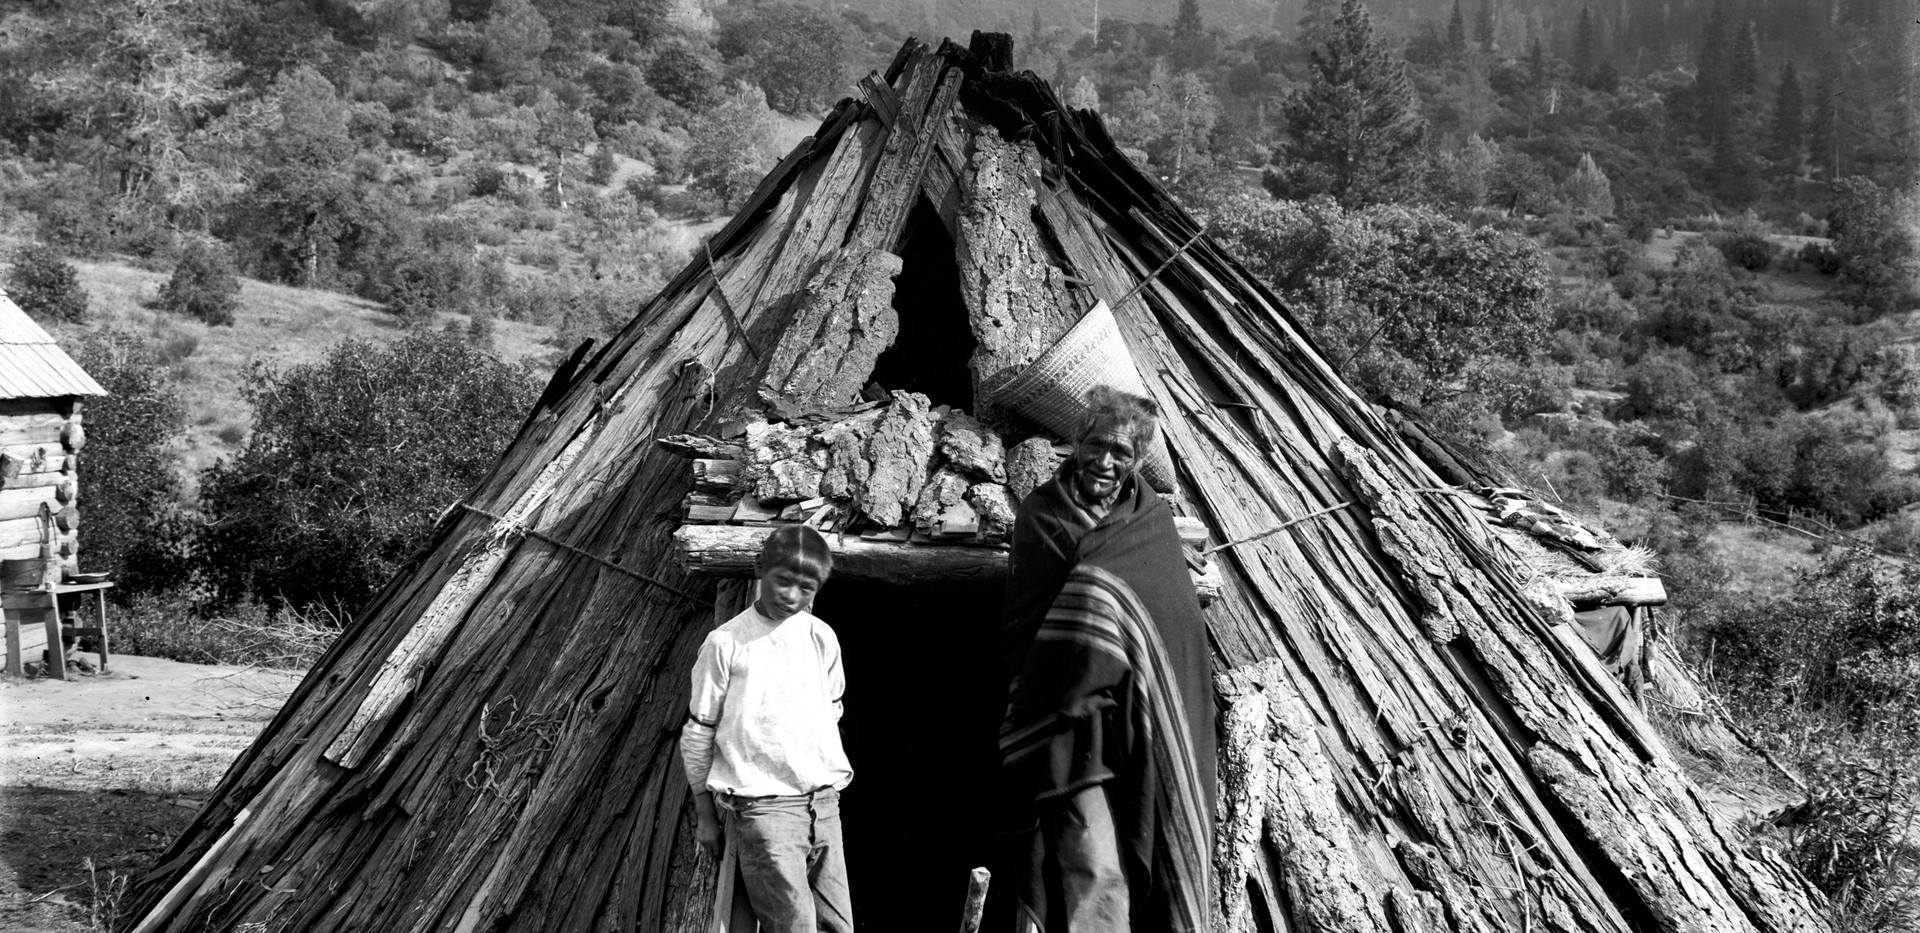 Monache man and boy in front of dwelling